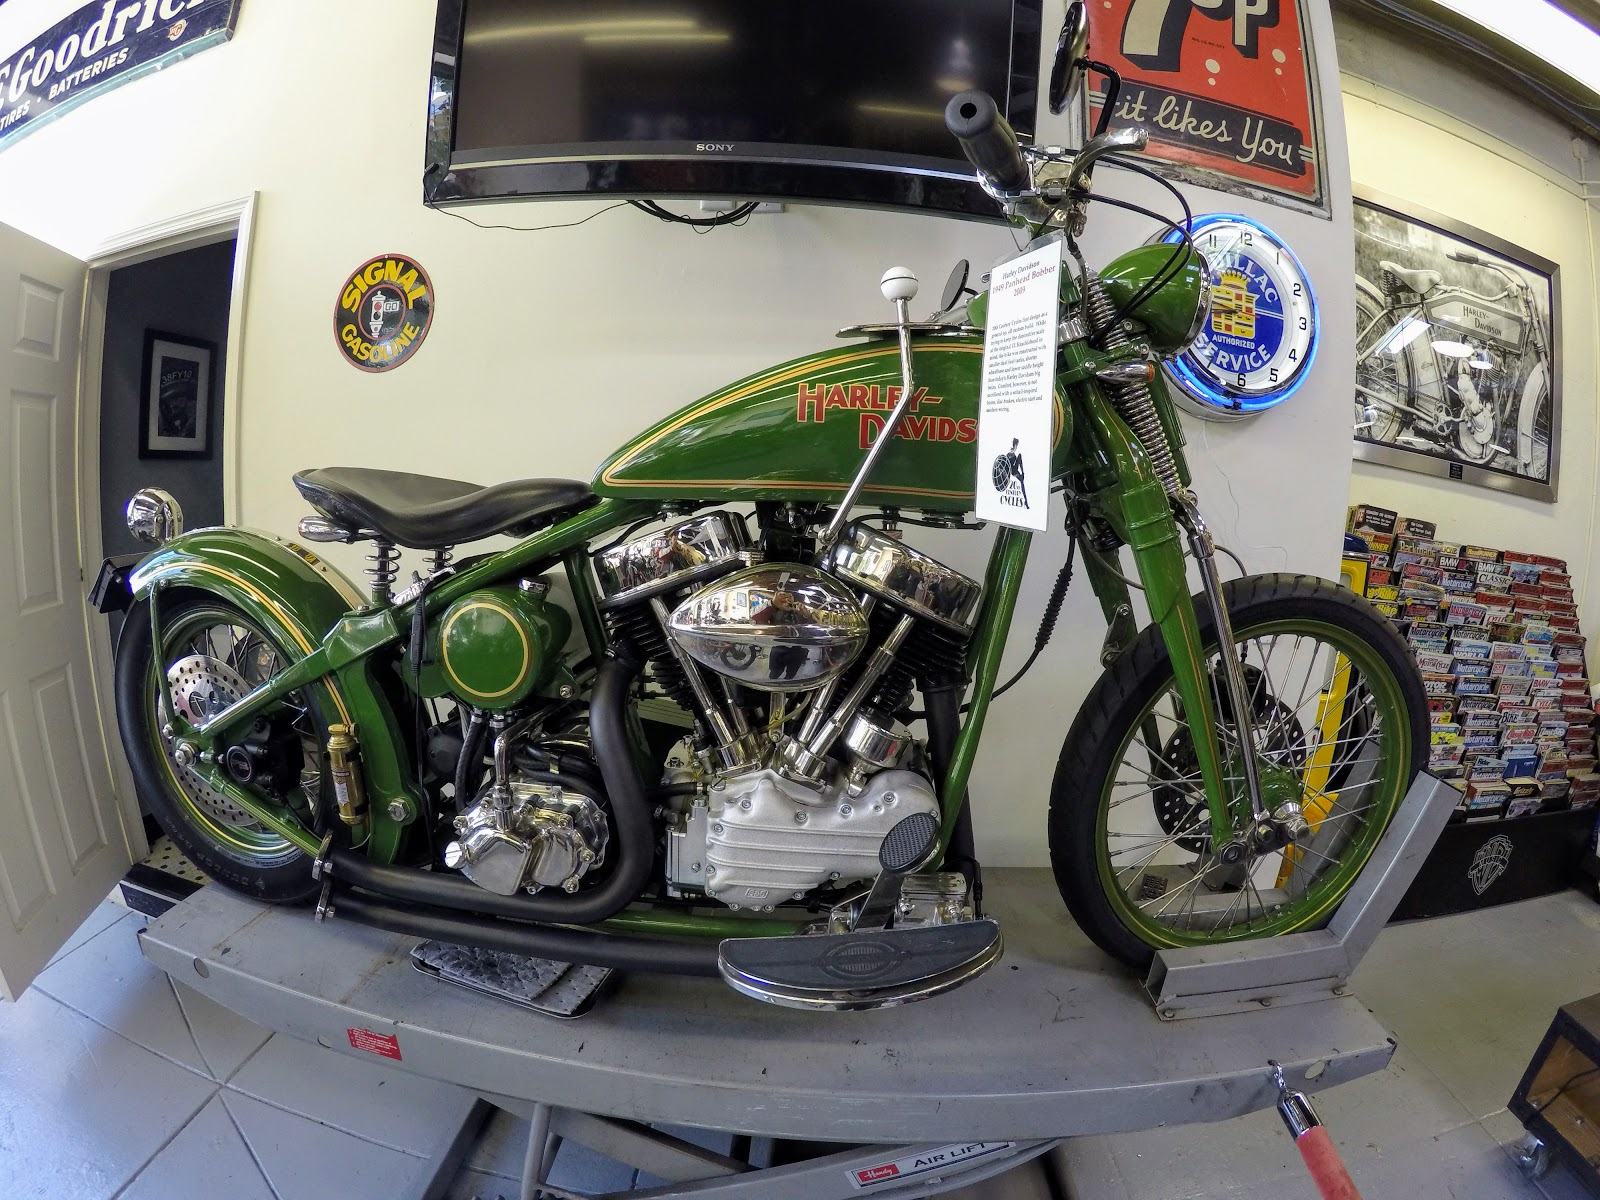 NYDUCATI presents Billy Joel's 20th Century Cycles Harley Davidsons 1949 Panhead Bobber